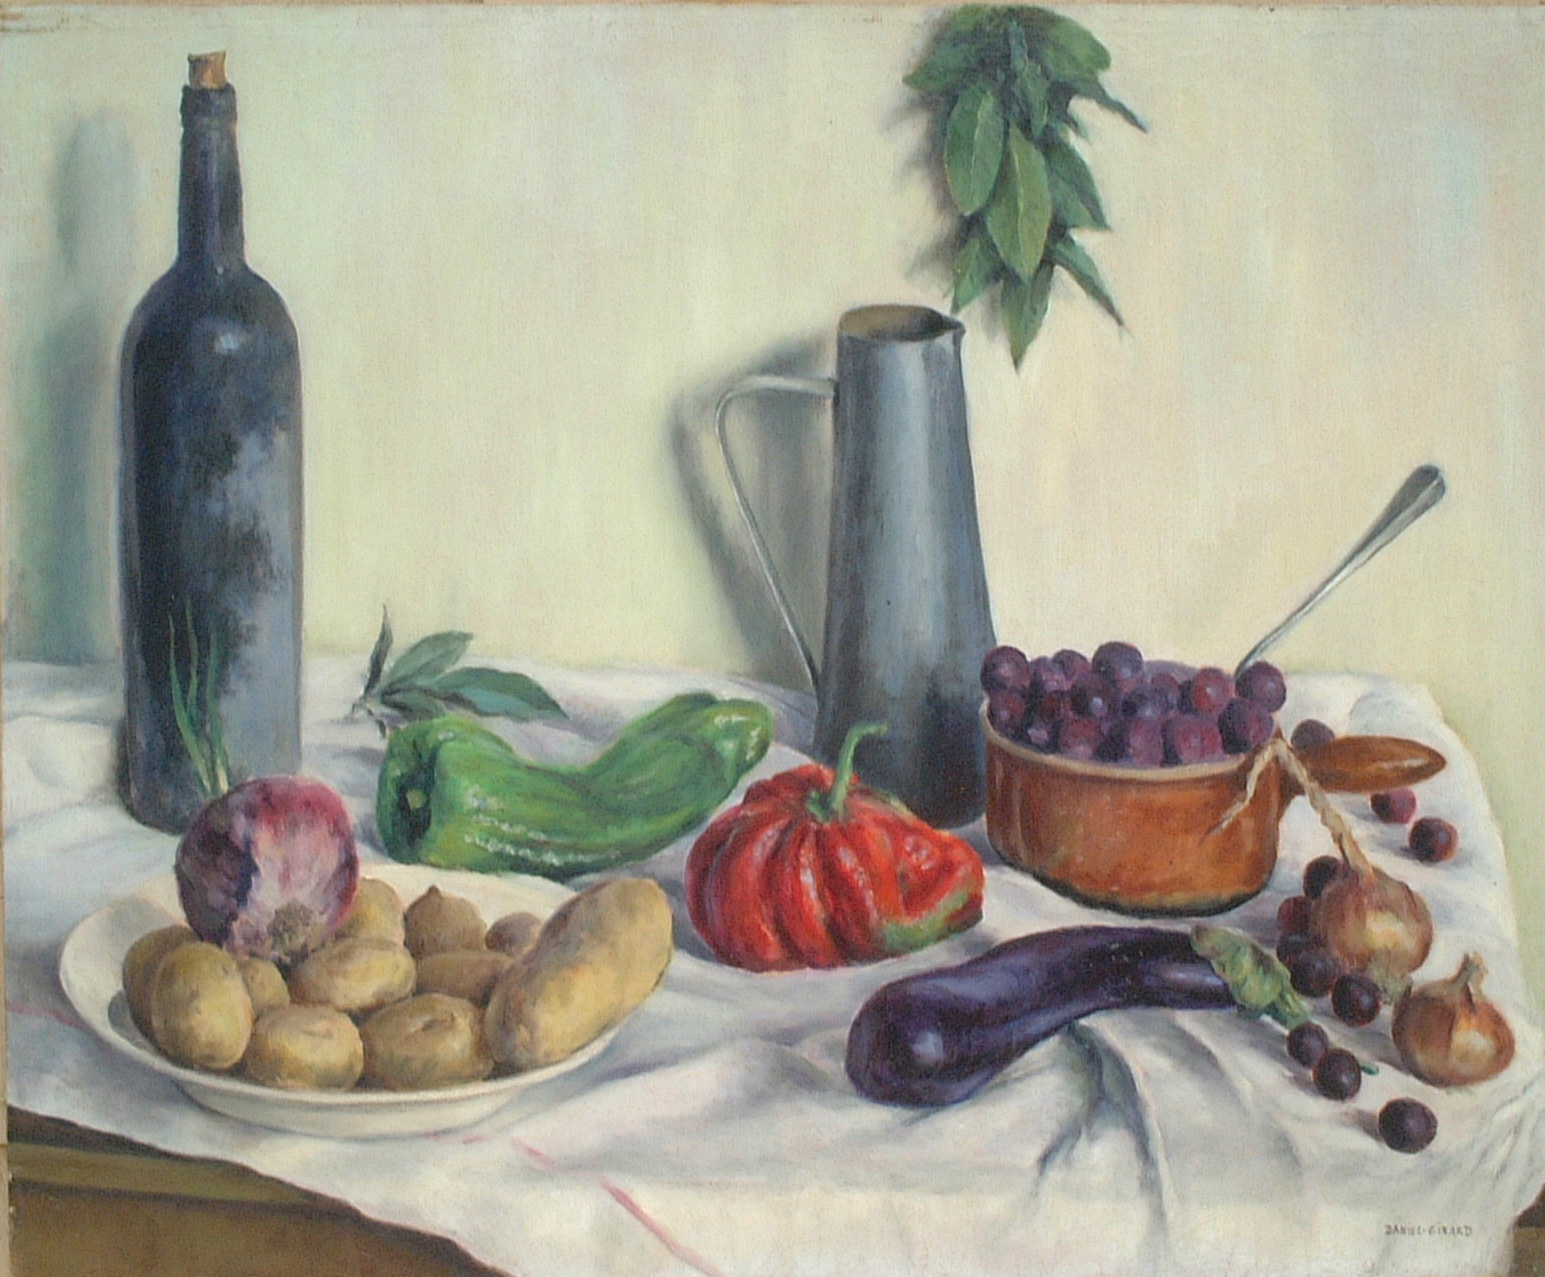 Artist: Daniel Gerard Title: Autumn Still Life Size: 23.5in x 28.5in Framed: Unframed Medium: Oil on Canvas